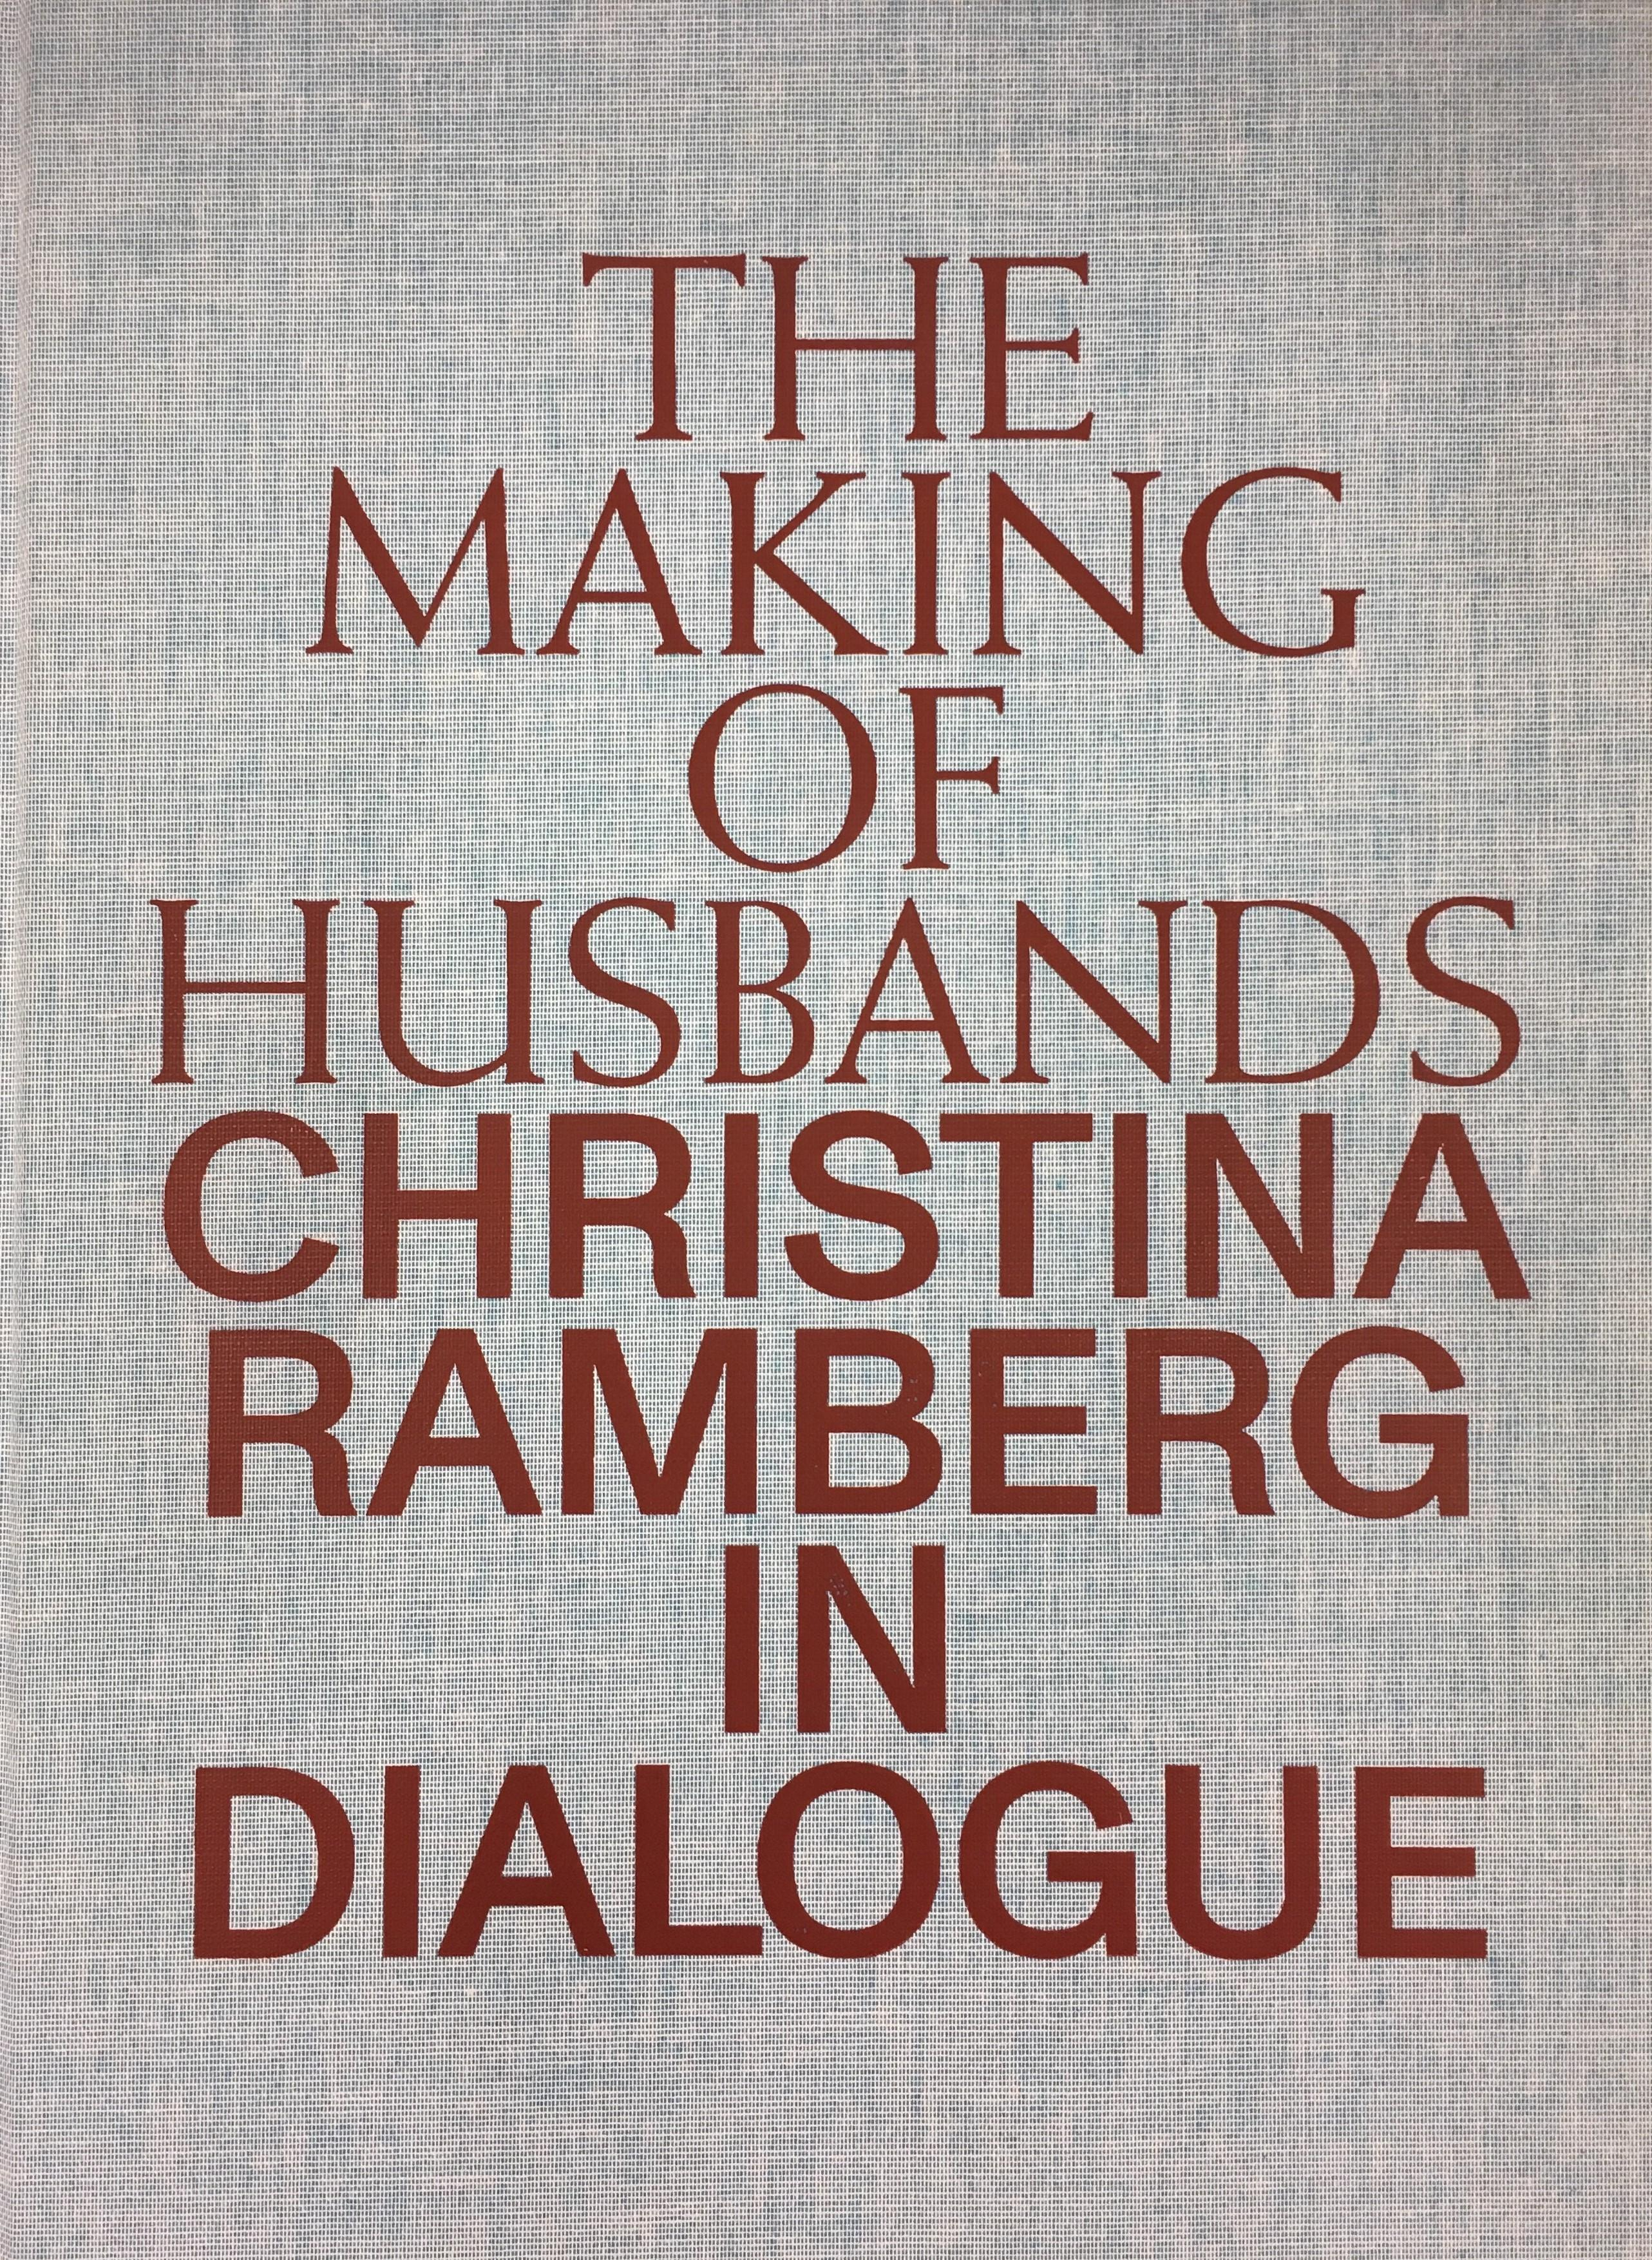 The Making of Husbands - Christina Ramberg in Dialogue